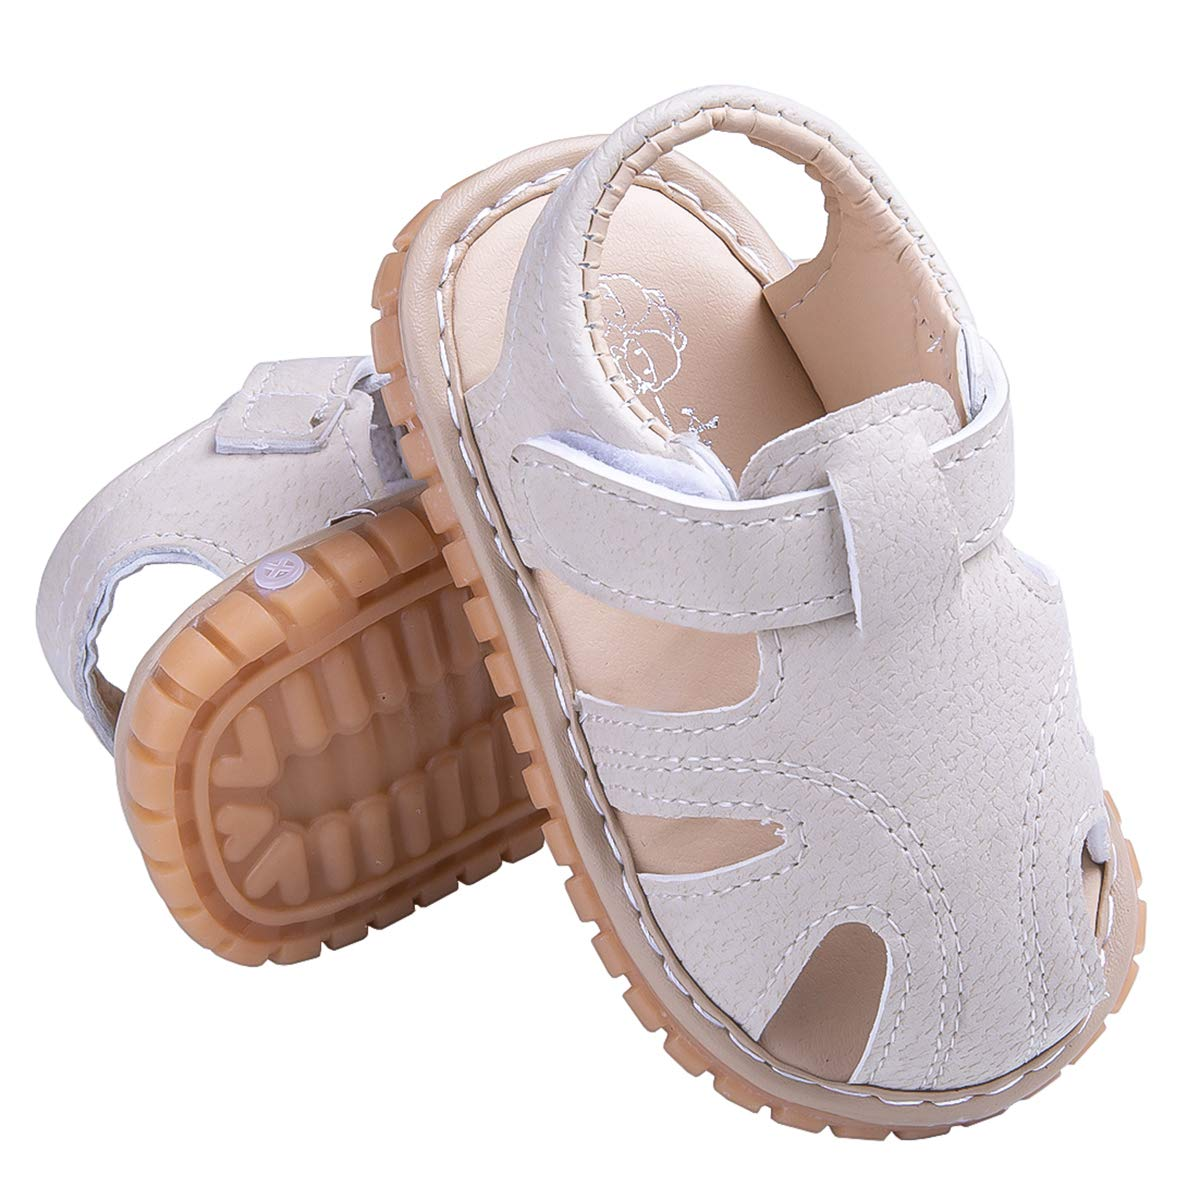 Baby Summer Sandals Toddler Infant Boys Girls Rubber Sole Removable Squeaker First Walker Shoes